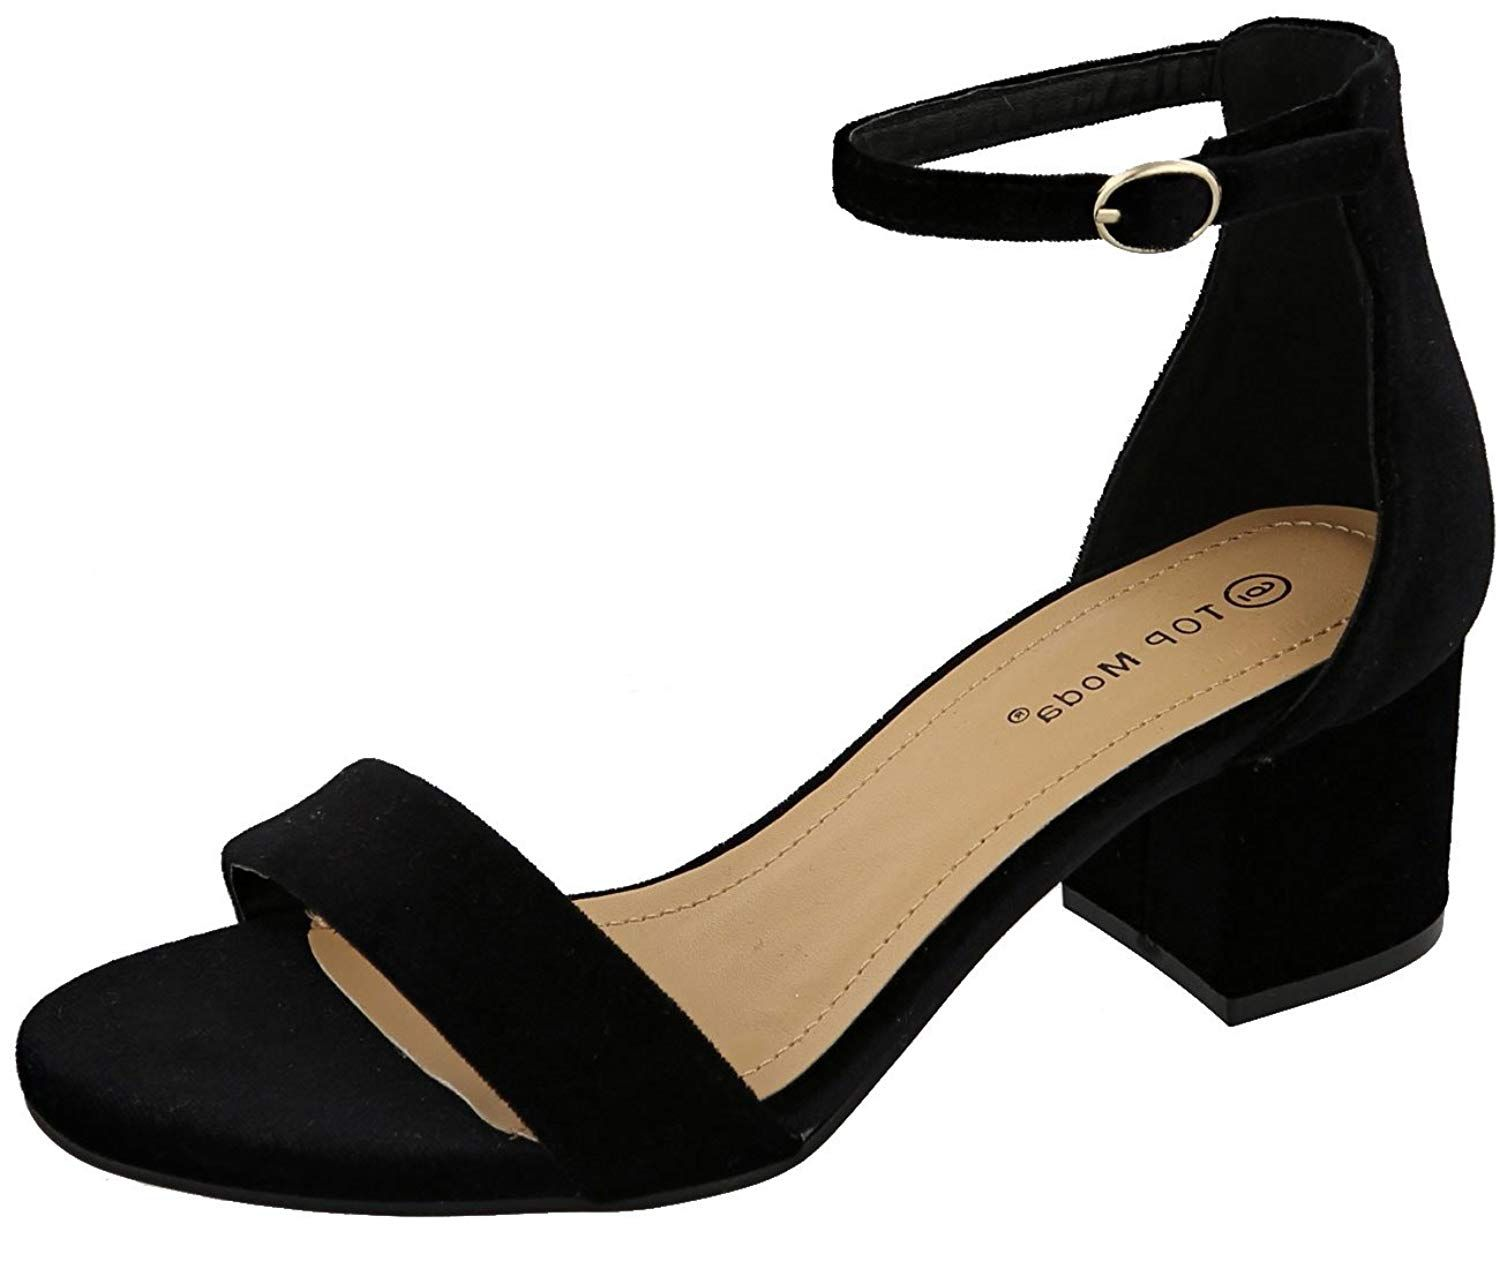 8d0d3e8ad9b Top Moda Women s velvet Mary Jane block heel sandal. A must have for three  season wear. Adjustable buckle strap closure with open toe   low ...